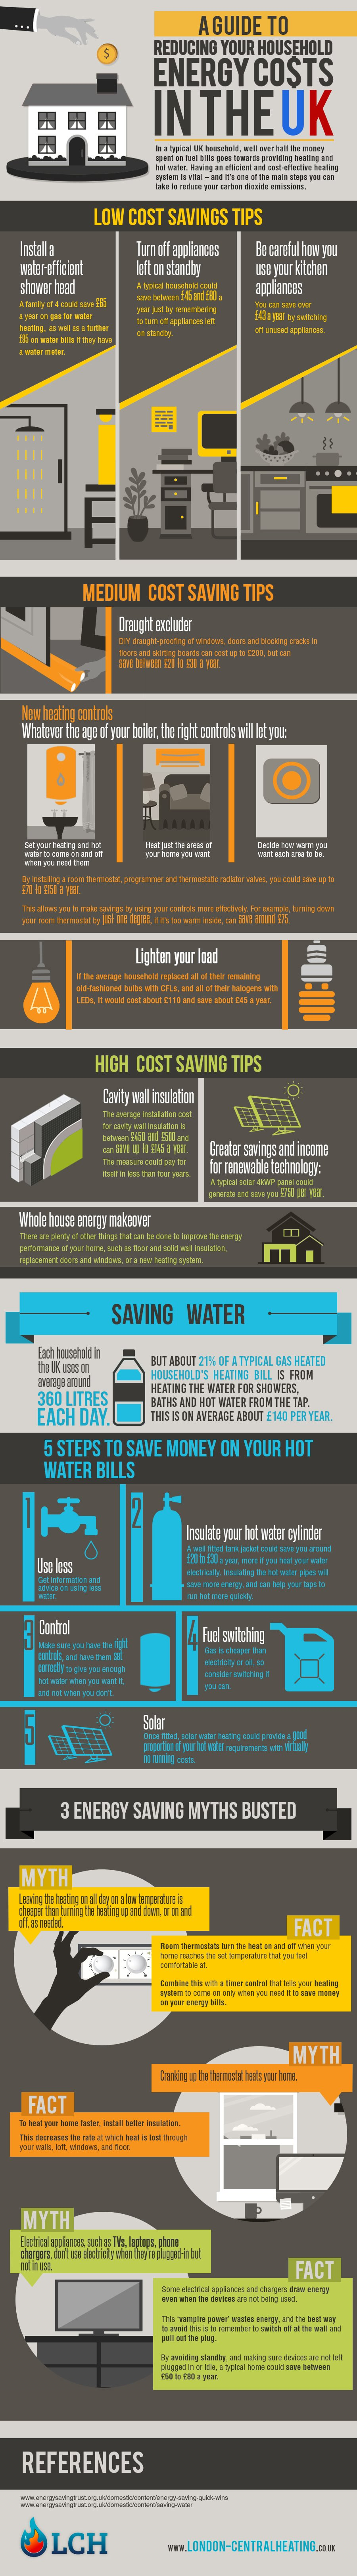 Guide to Reducing Energy Costs In The UK [Infographic]